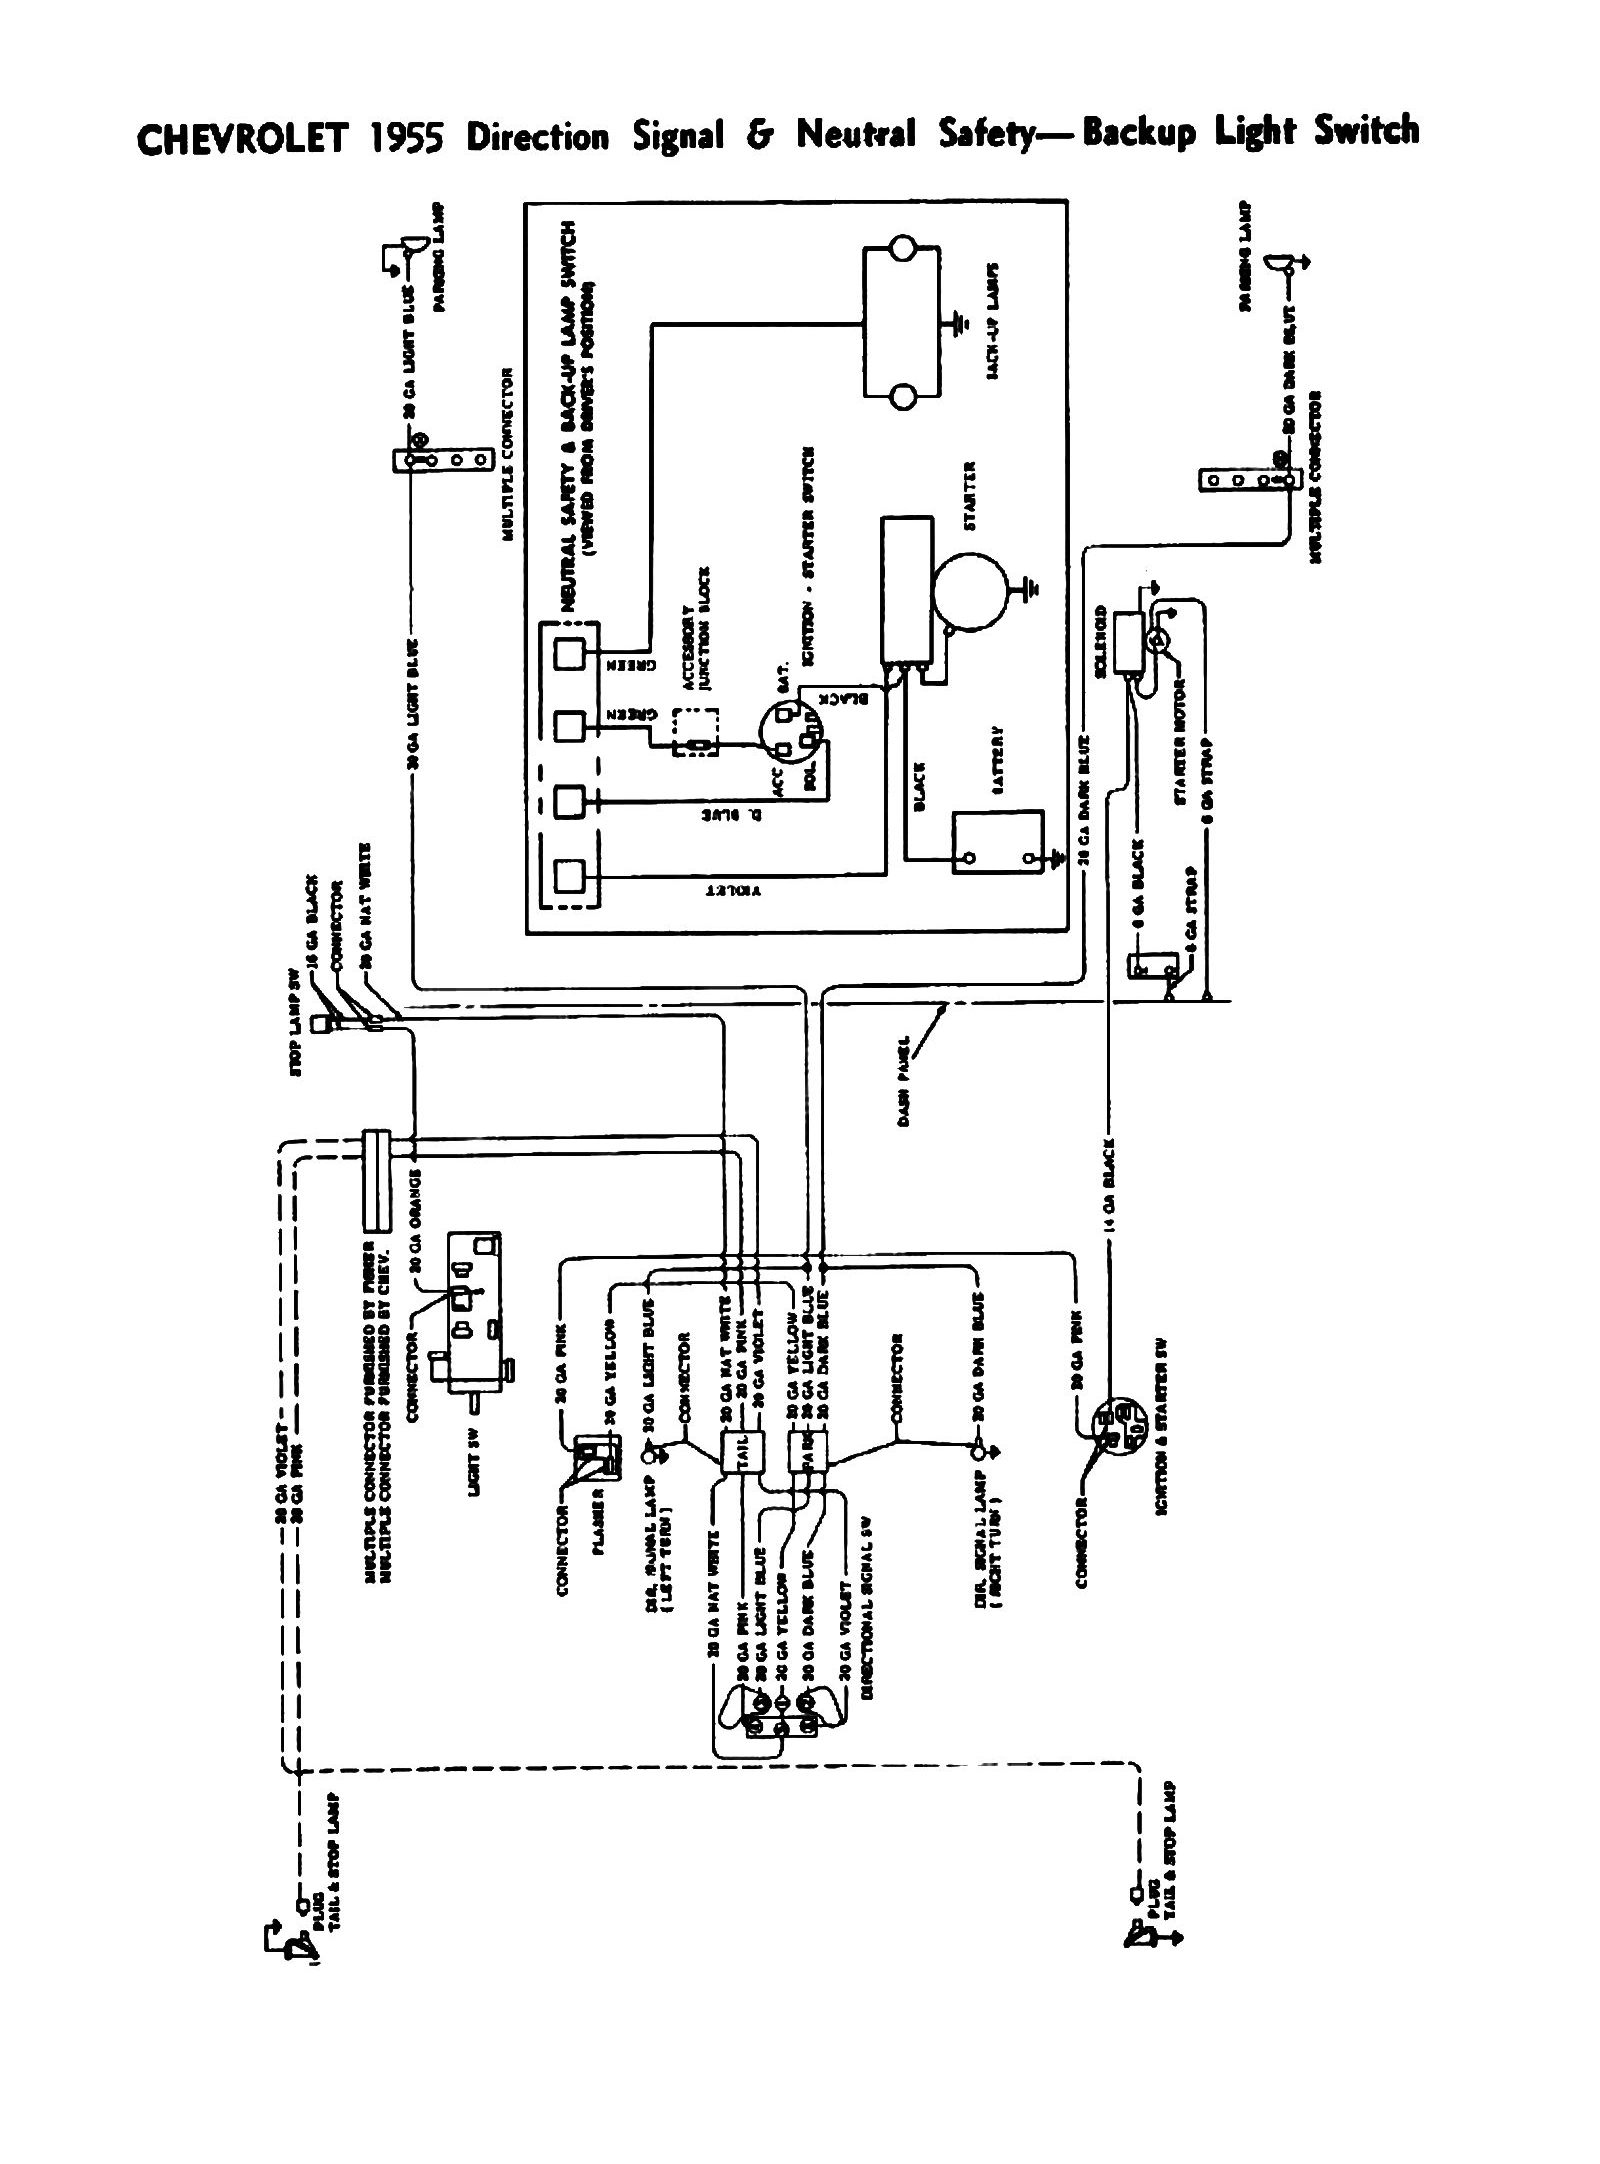 1958 gmc wiring diagram wiring diagram site 1958 gmc truck wiring diagram wiring diagrams best gmc kodiak wiring diagram 1958 gmc truck